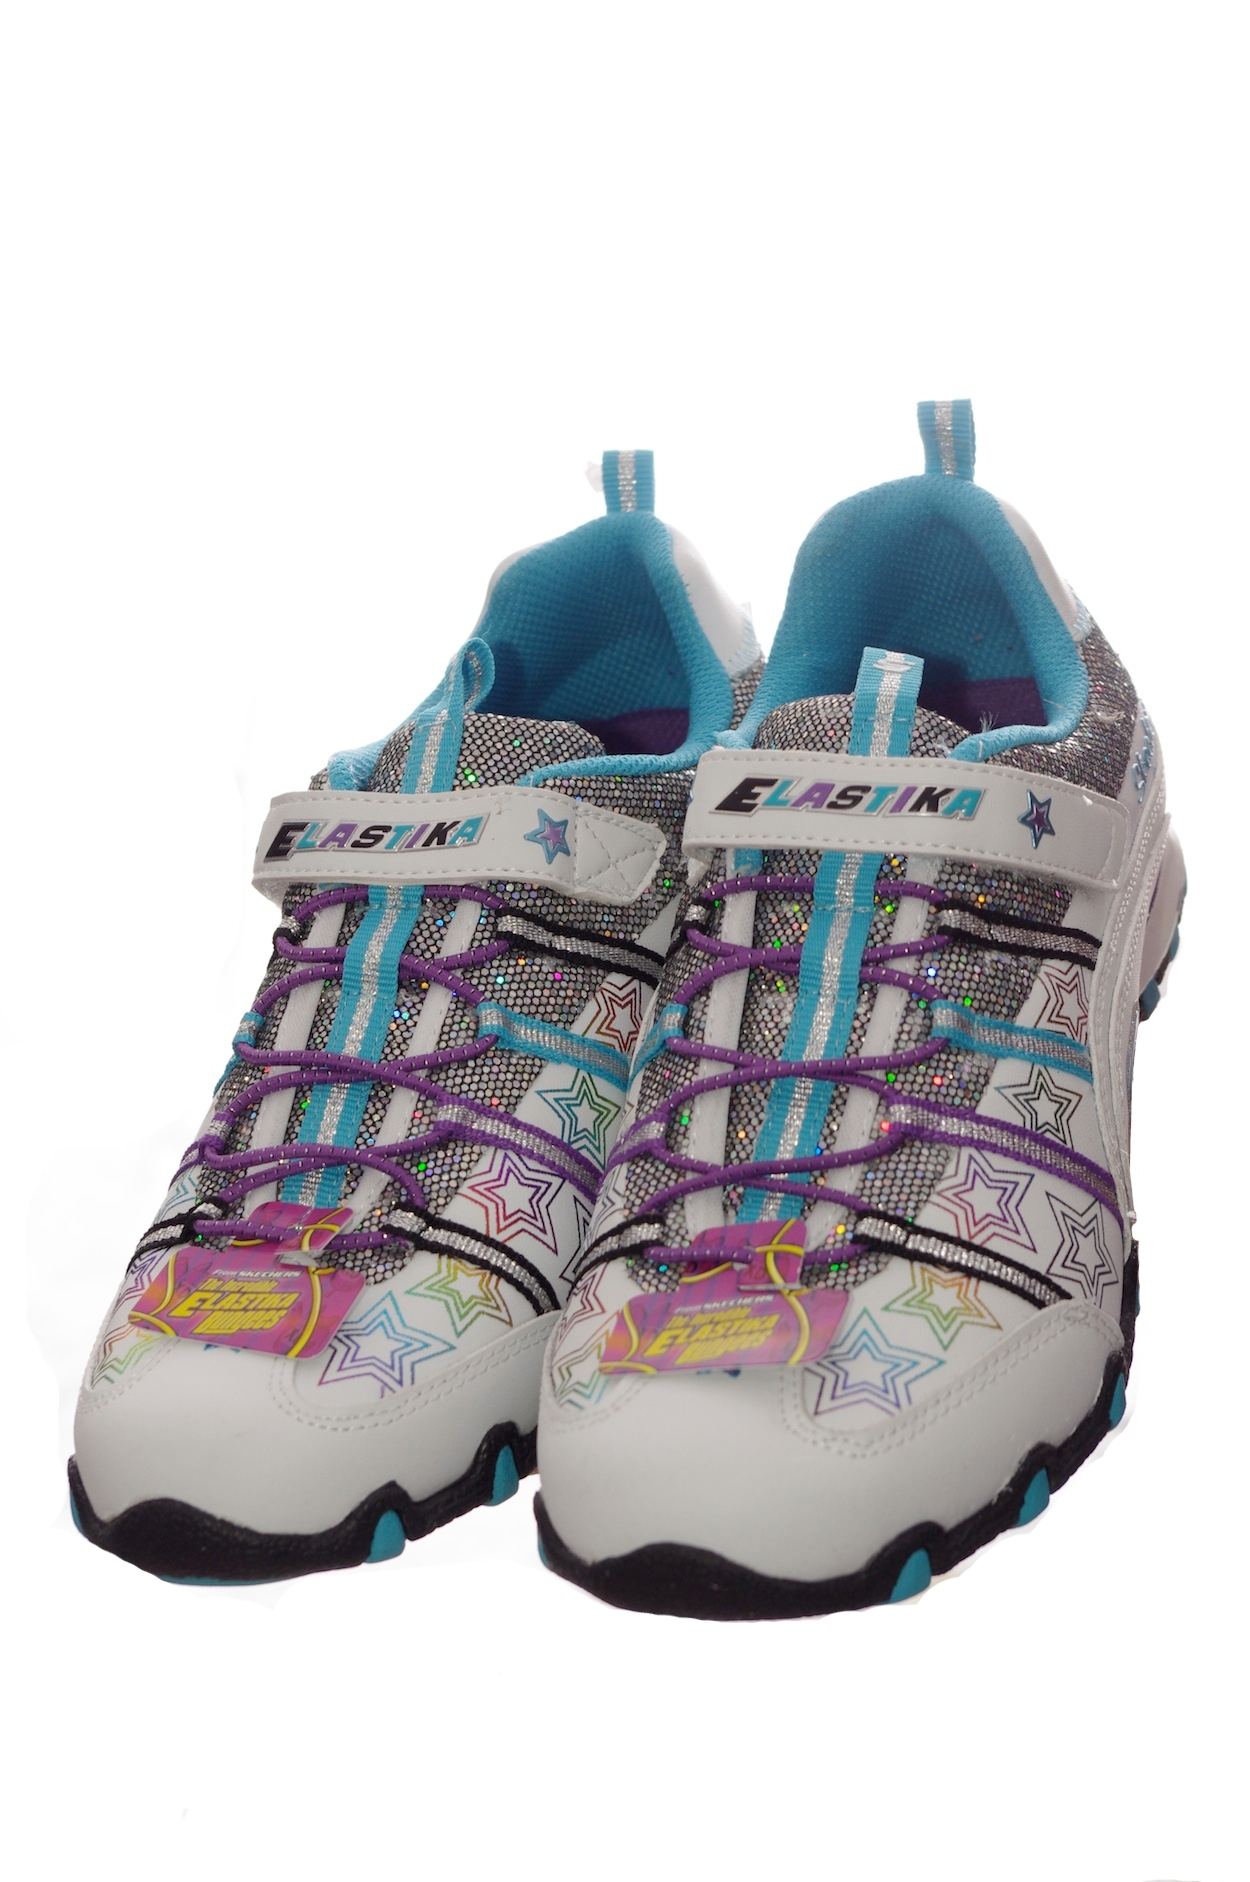 Sketchers Glimmer Gal Girls Shoes-New in the box (no lid on box